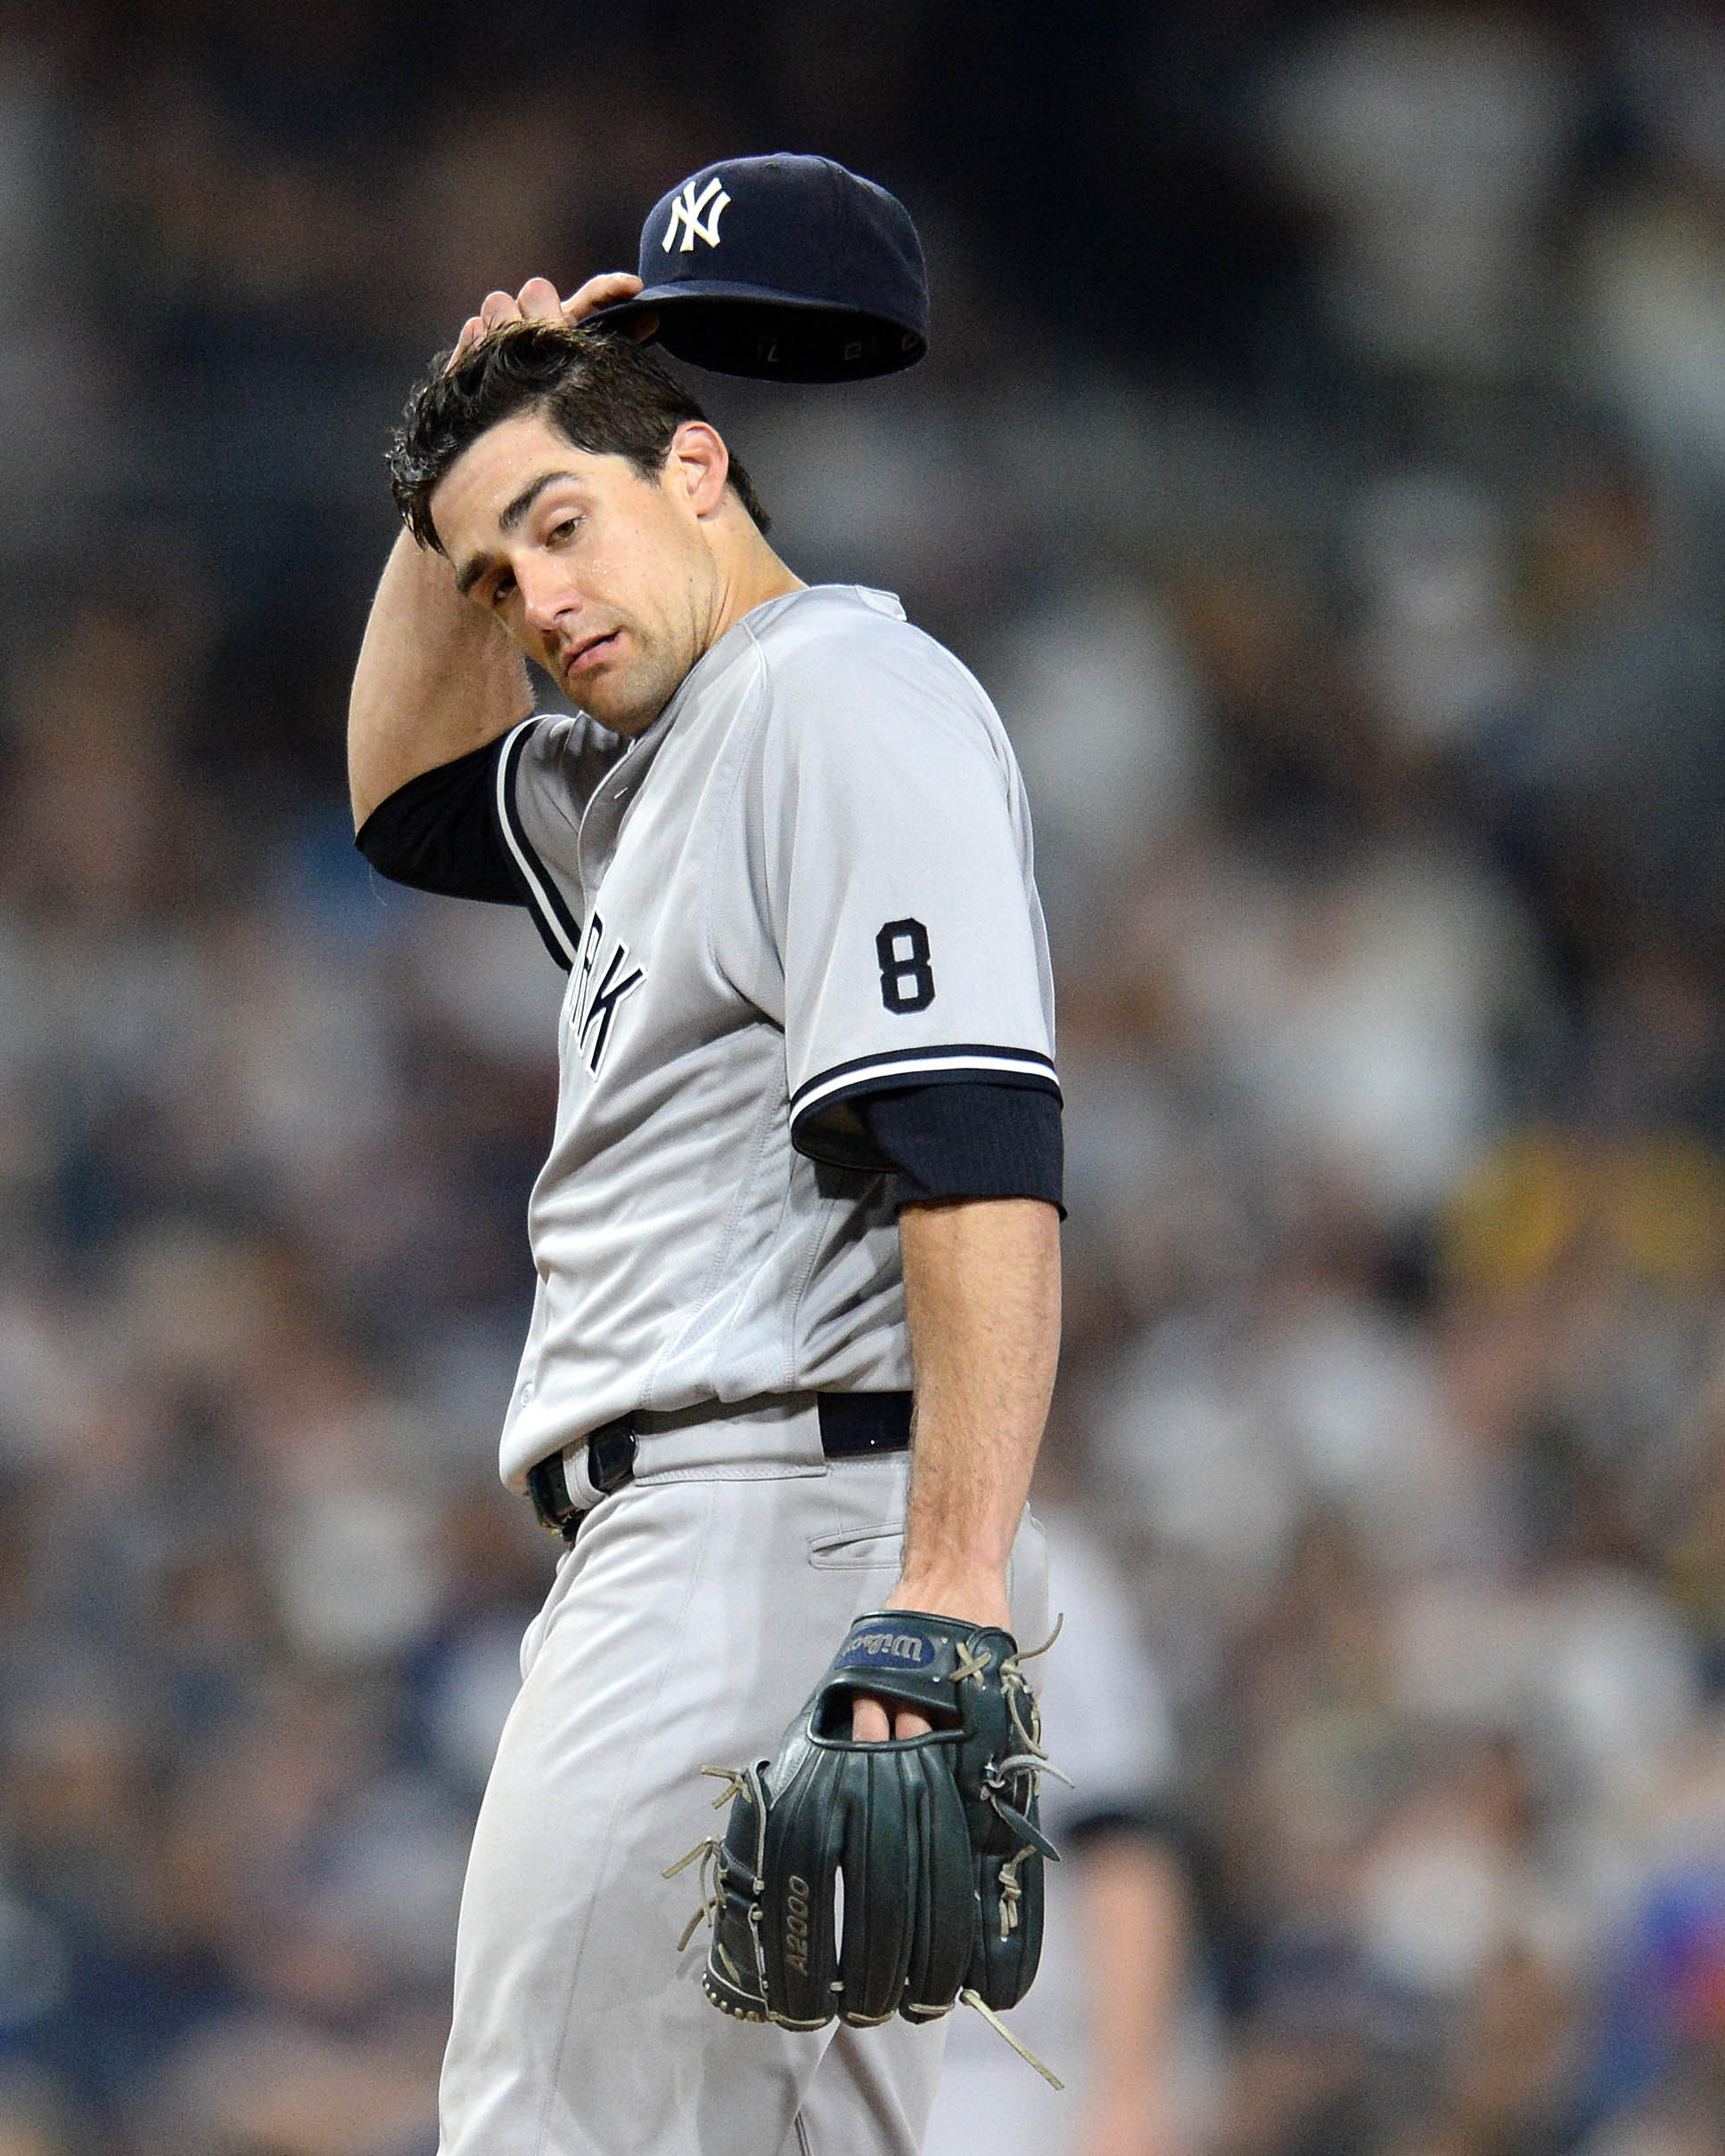 The New York Yankees should trade Nathan Eovaldi to the Pittsburgh Pirates